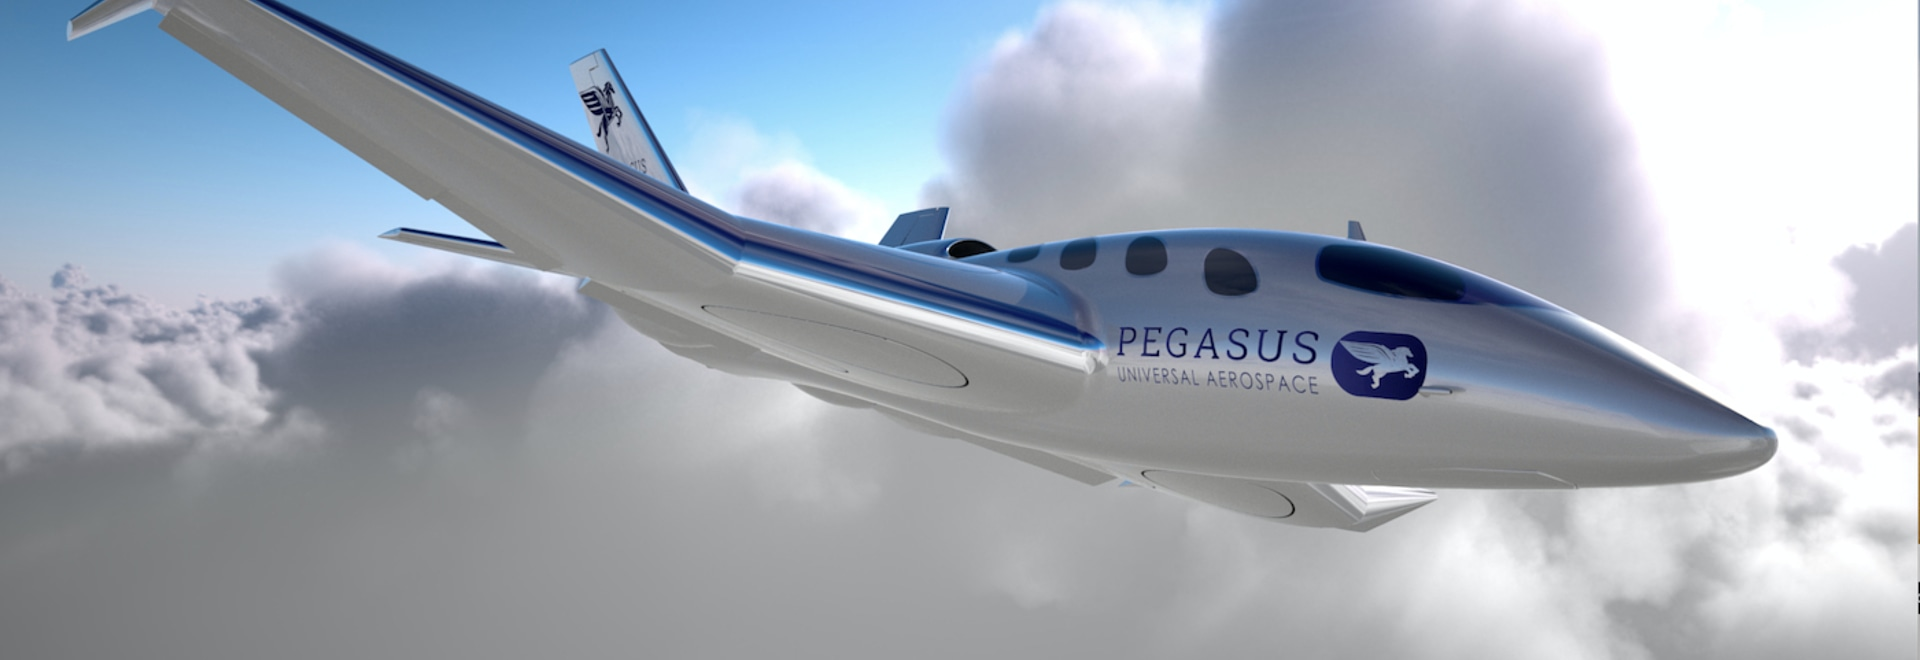 The designers believe Pegasus One will compete with more traditional biz jets on short to medium distance trips.